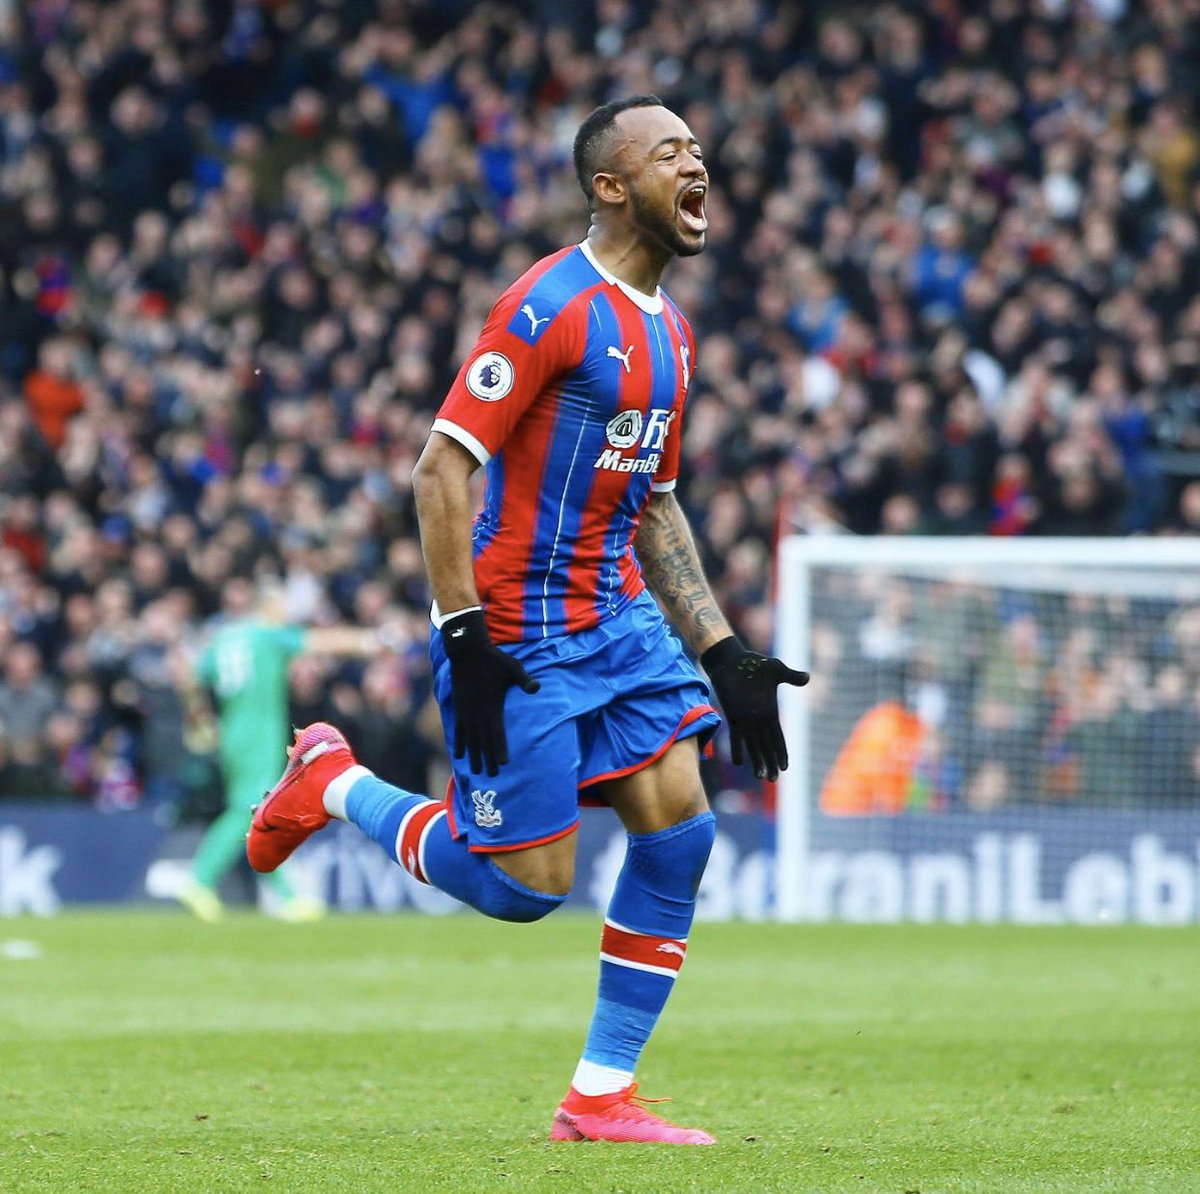 Jordan Ayew will become a much better footballer when he joins Chelsea - Marcel Desailly